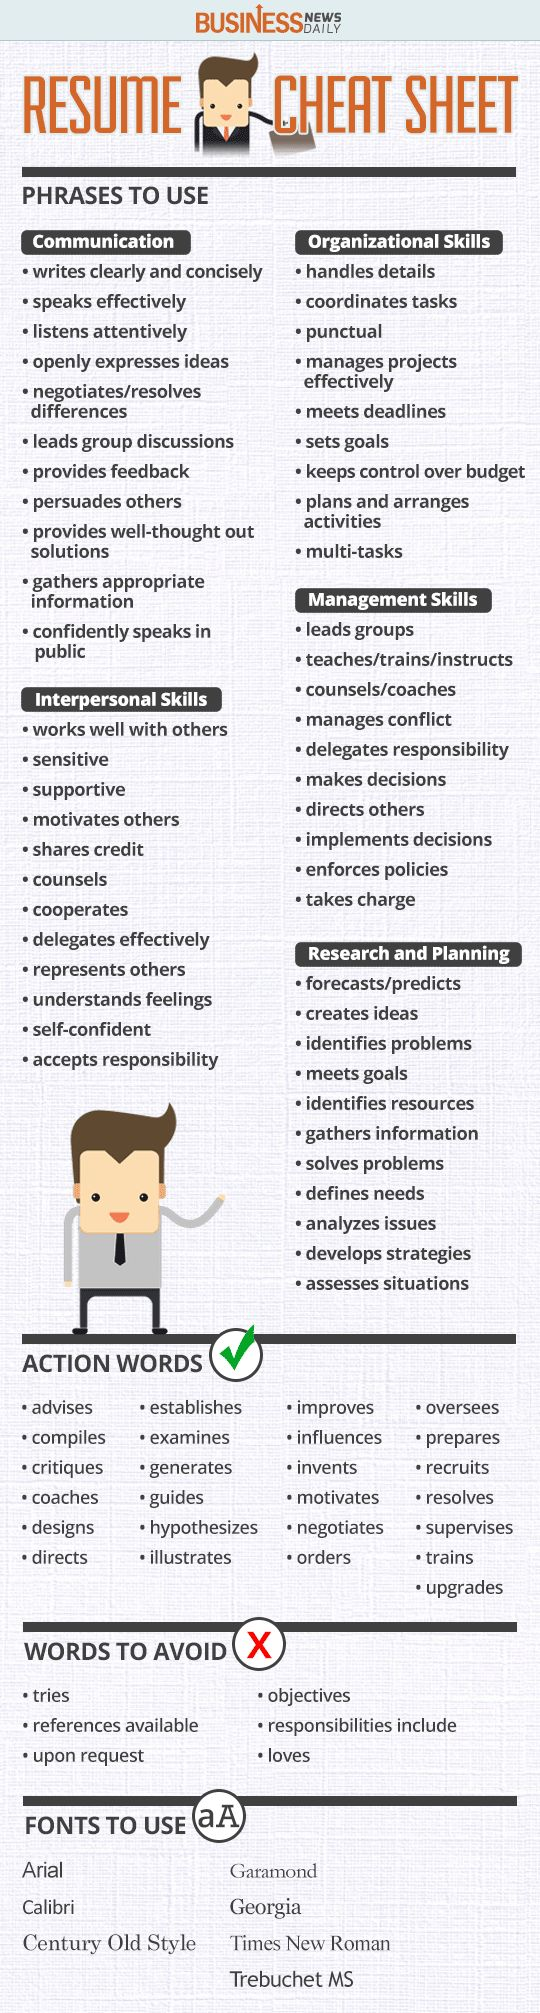 Opposenewapstandardsus  Mesmerizing  Ideas About Resume On Pinterest  Cv Format Resume Cv And  With Licious Resume Cheat Sheet Infographic Andrews Almost Done With A Complete Unit On Employment Which With Endearing New Nurse Graduate Resume Also Resume Template Student In Addition How To Make A Killer Resume And Nurse Case Manager Resume As Well As Help Making A Resume For Free Additionally Research Technician Resume From Pinterestcom With Opposenewapstandardsus  Licious  Ideas About Resume On Pinterest  Cv Format Resume Cv And  With Endearing Resume Cheat Sheet Infographic Andrews Almost Done With A Complete Unit On Employment Which And Mesmerizing New Nurse Graduate Resume Also Resume Template Student In Addition How To Make A Killer Resume From Pinterestcom